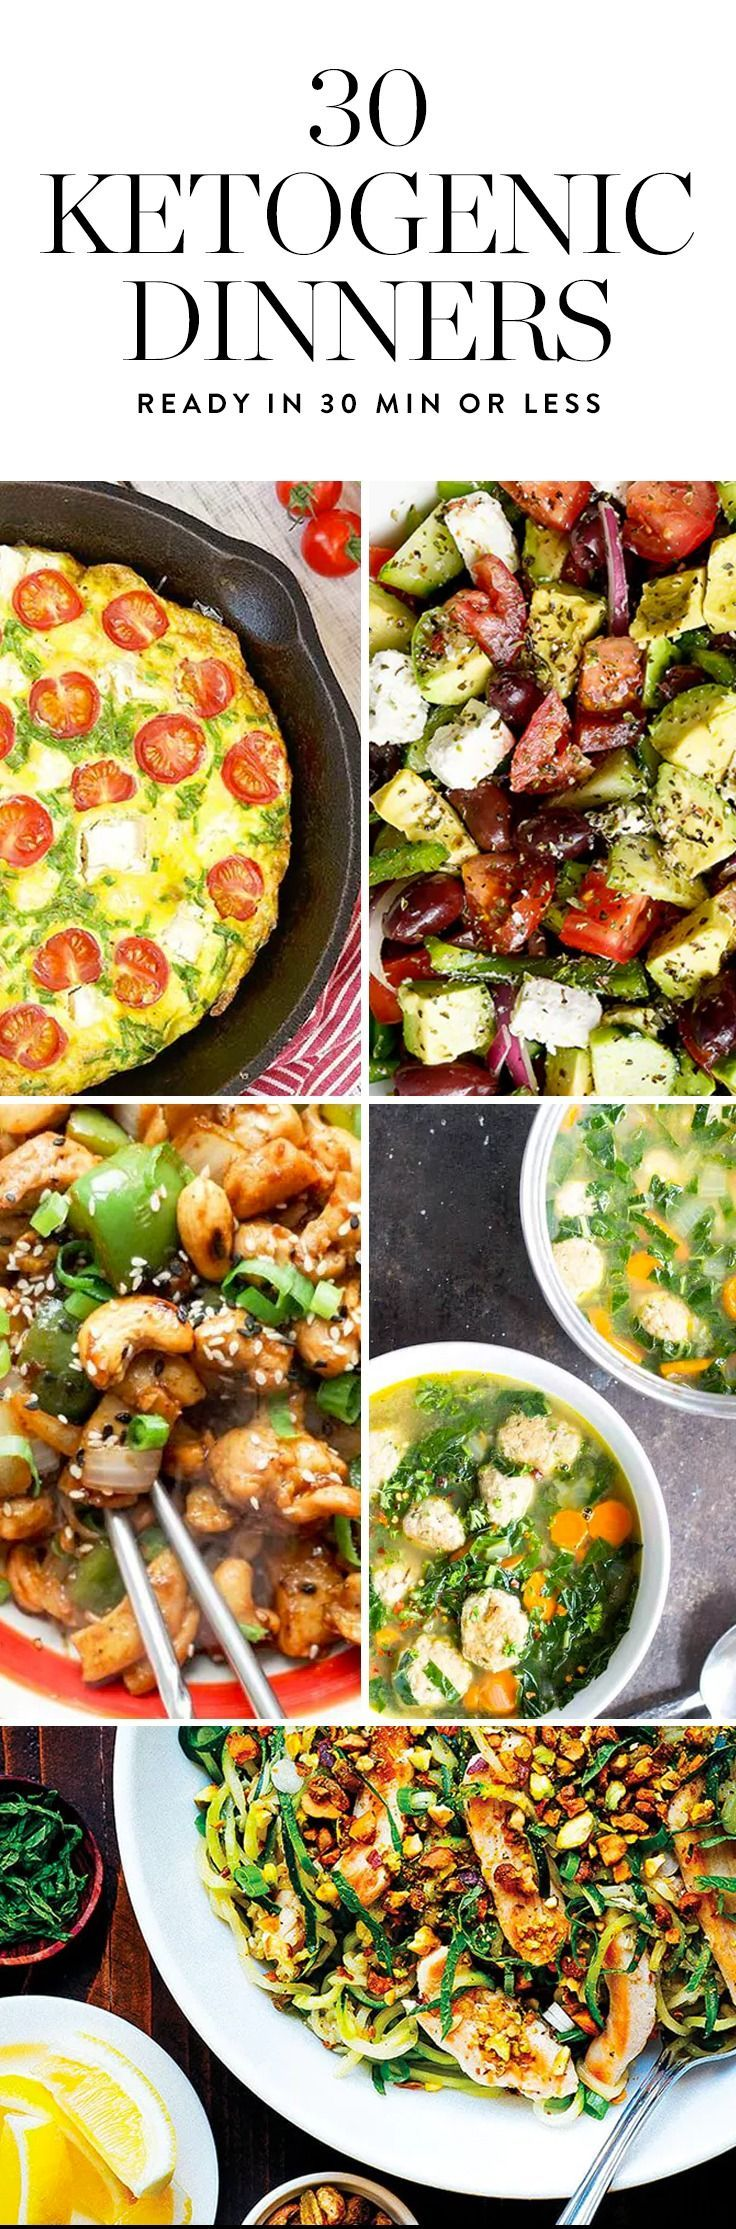 Low in carbs and able to be made in about 30 minutes, these 30 Ketogenic Dinner Recipes will help you stay on track with your nutrition goals.